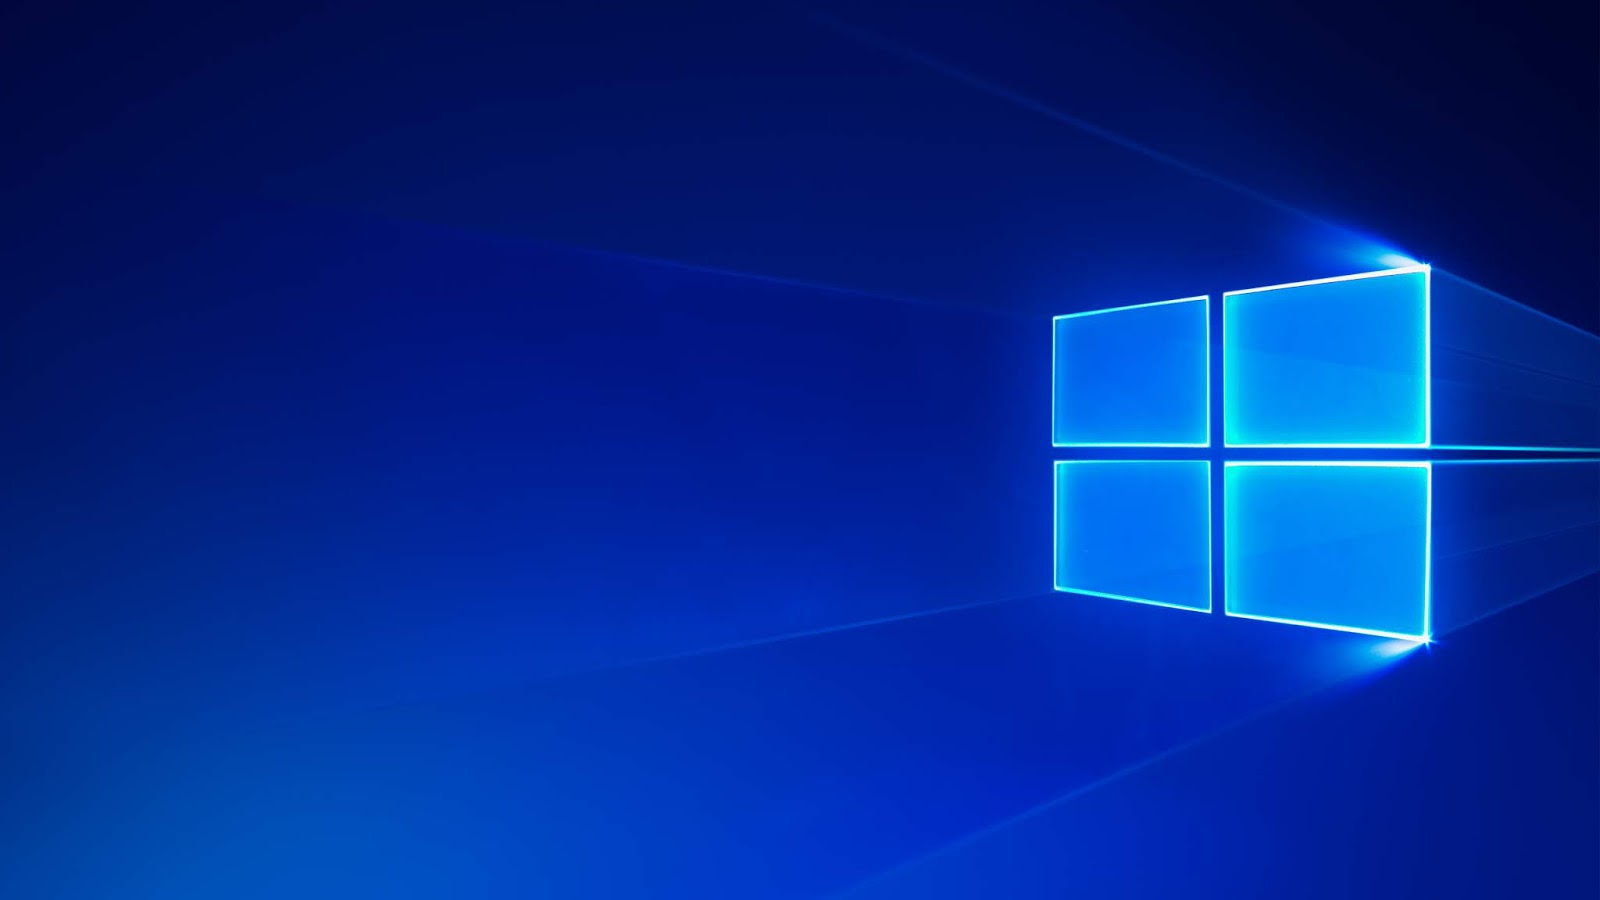 Unable To Activate Windows 10 after Hardware Change